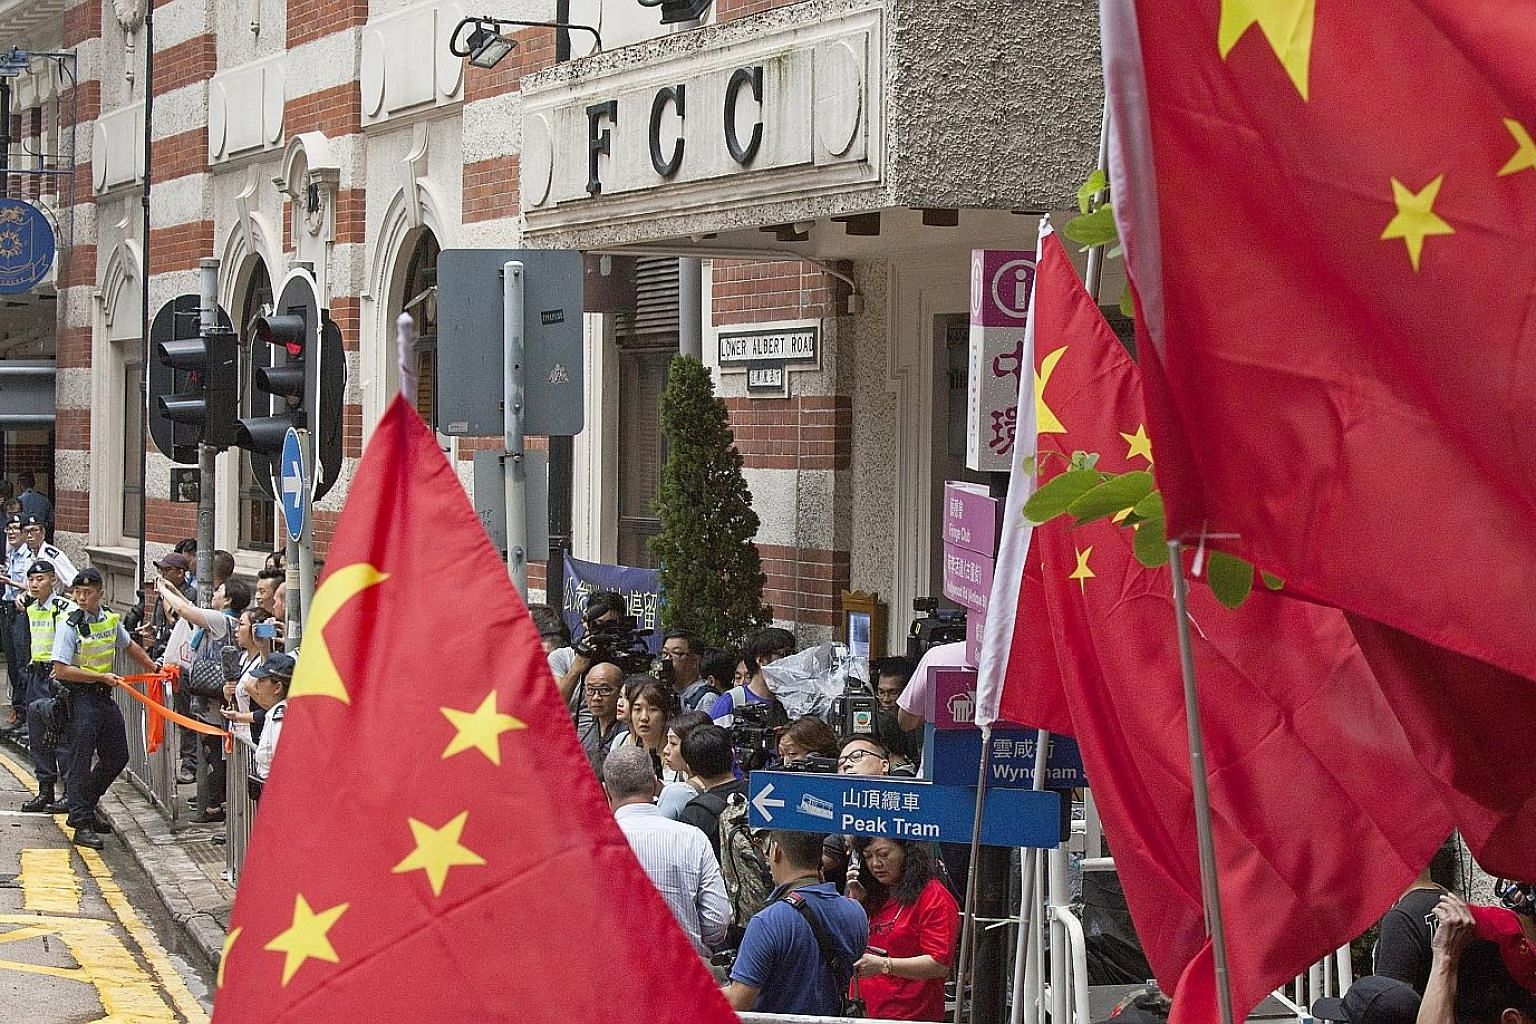 Pro-China supporters gathering outside the Foreign Correspondents' Club (FCC) in Central, Hong Kong, yesterday to protest against a talk by activist Andy Chan to advocate independence. Both Mr Chan and the FCC had faced intense pressure from the auth